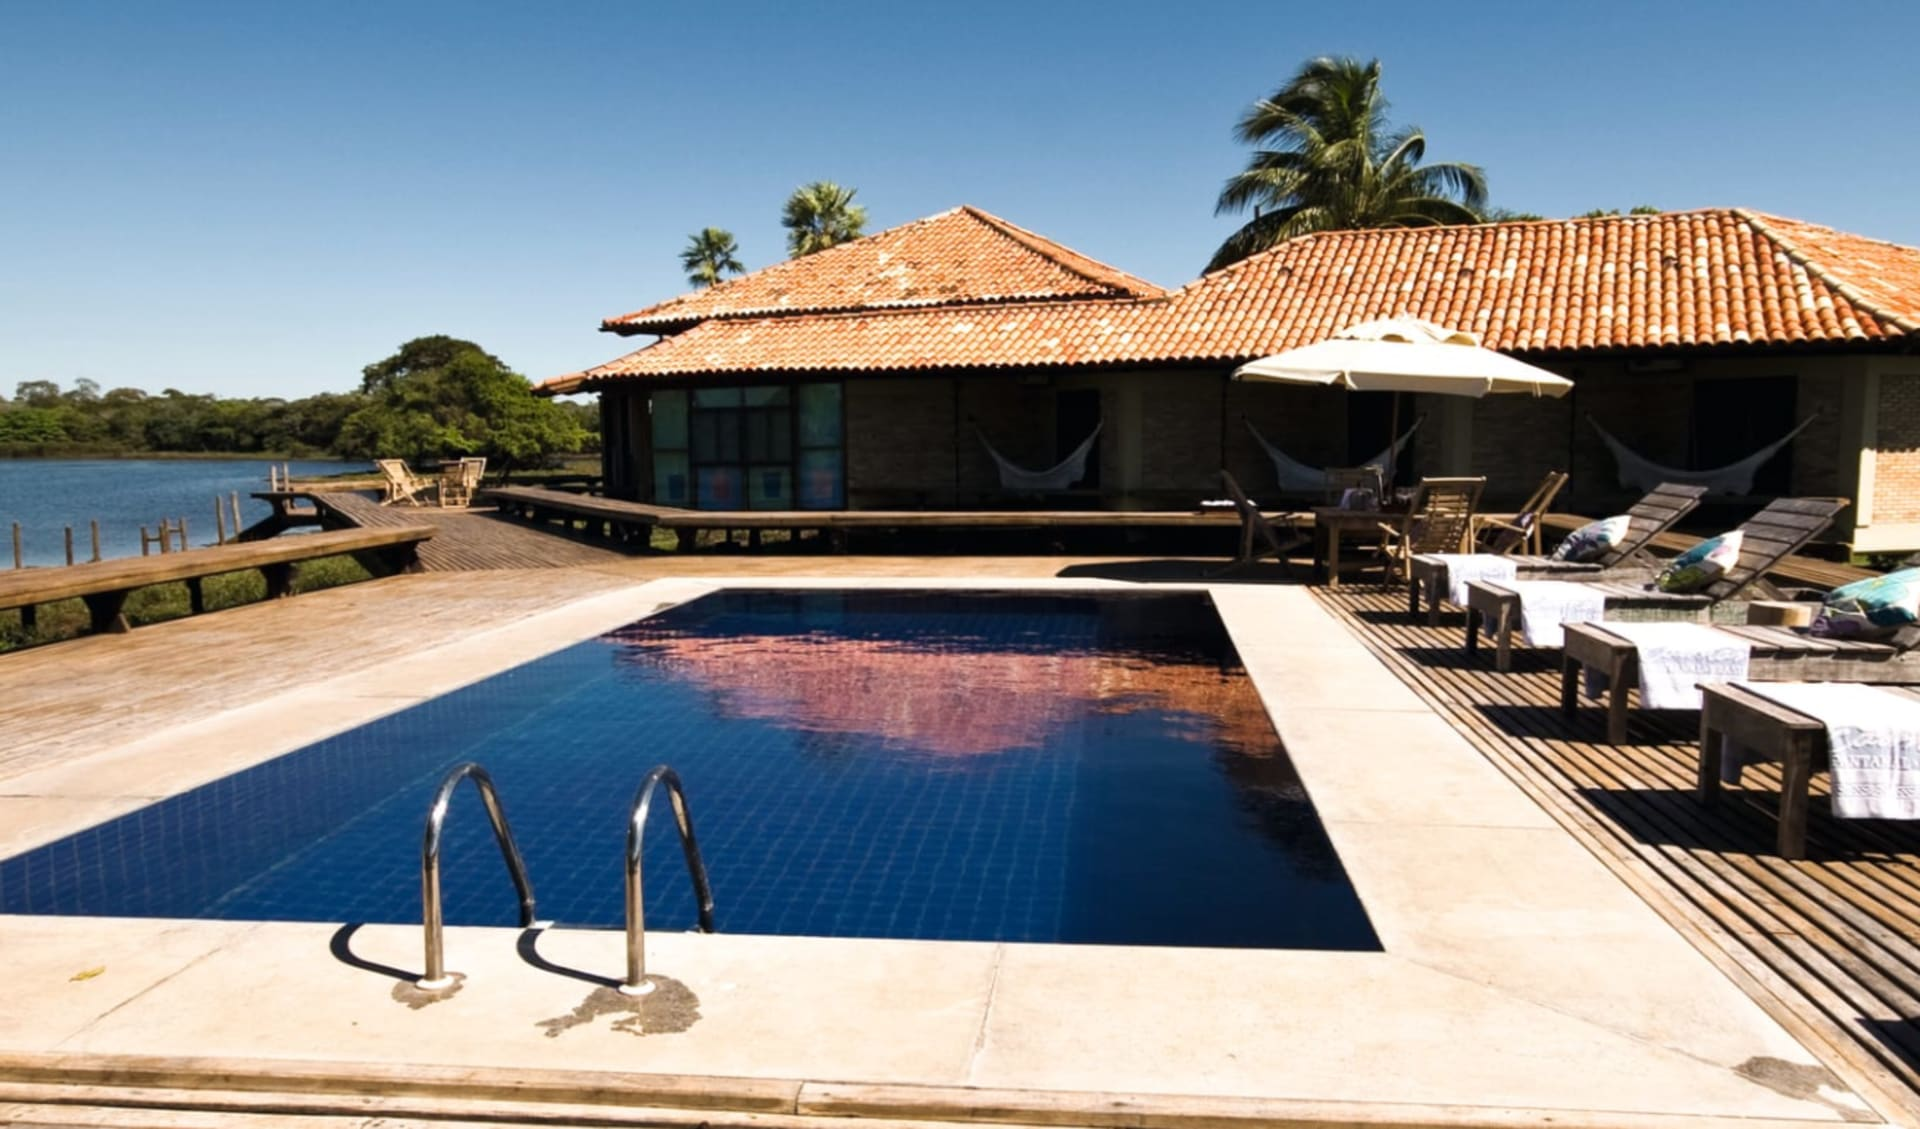 Caiman Ecological Refugium 5 Tage ab Campo Grande: Exterior Caiman Lodge - Swimming Pool Baiazinha c Compass